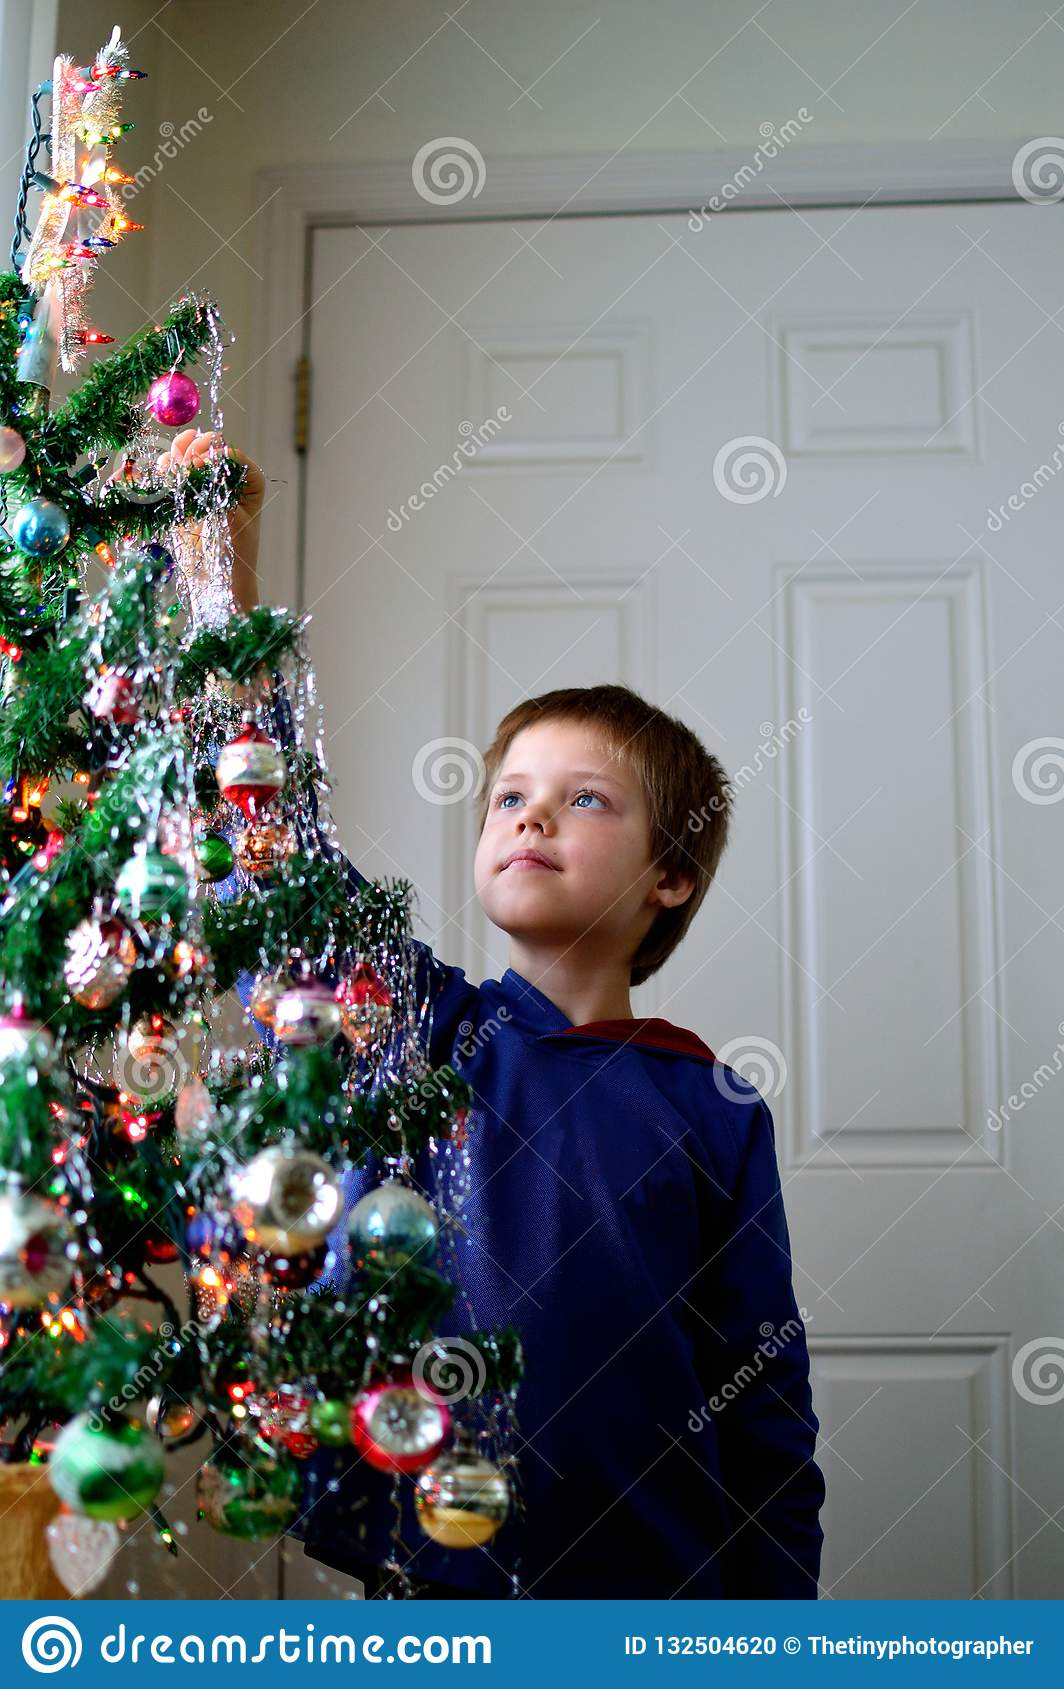 Icicles For Christmas Trees.Boy Hanging Icicles On Christmas Tree Decorating Stock Photo